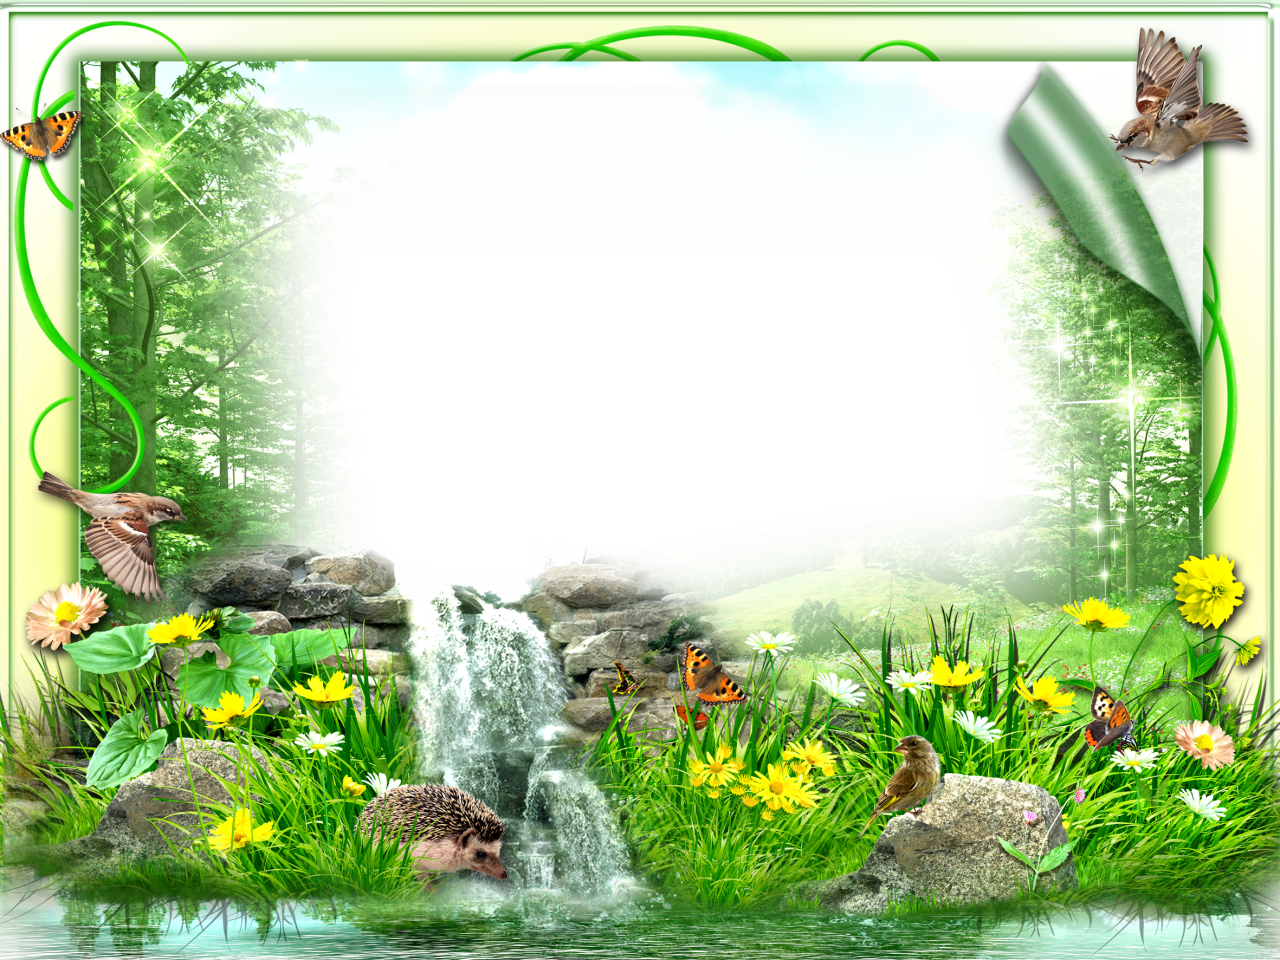 Nature frame png. Pin by suresh rock